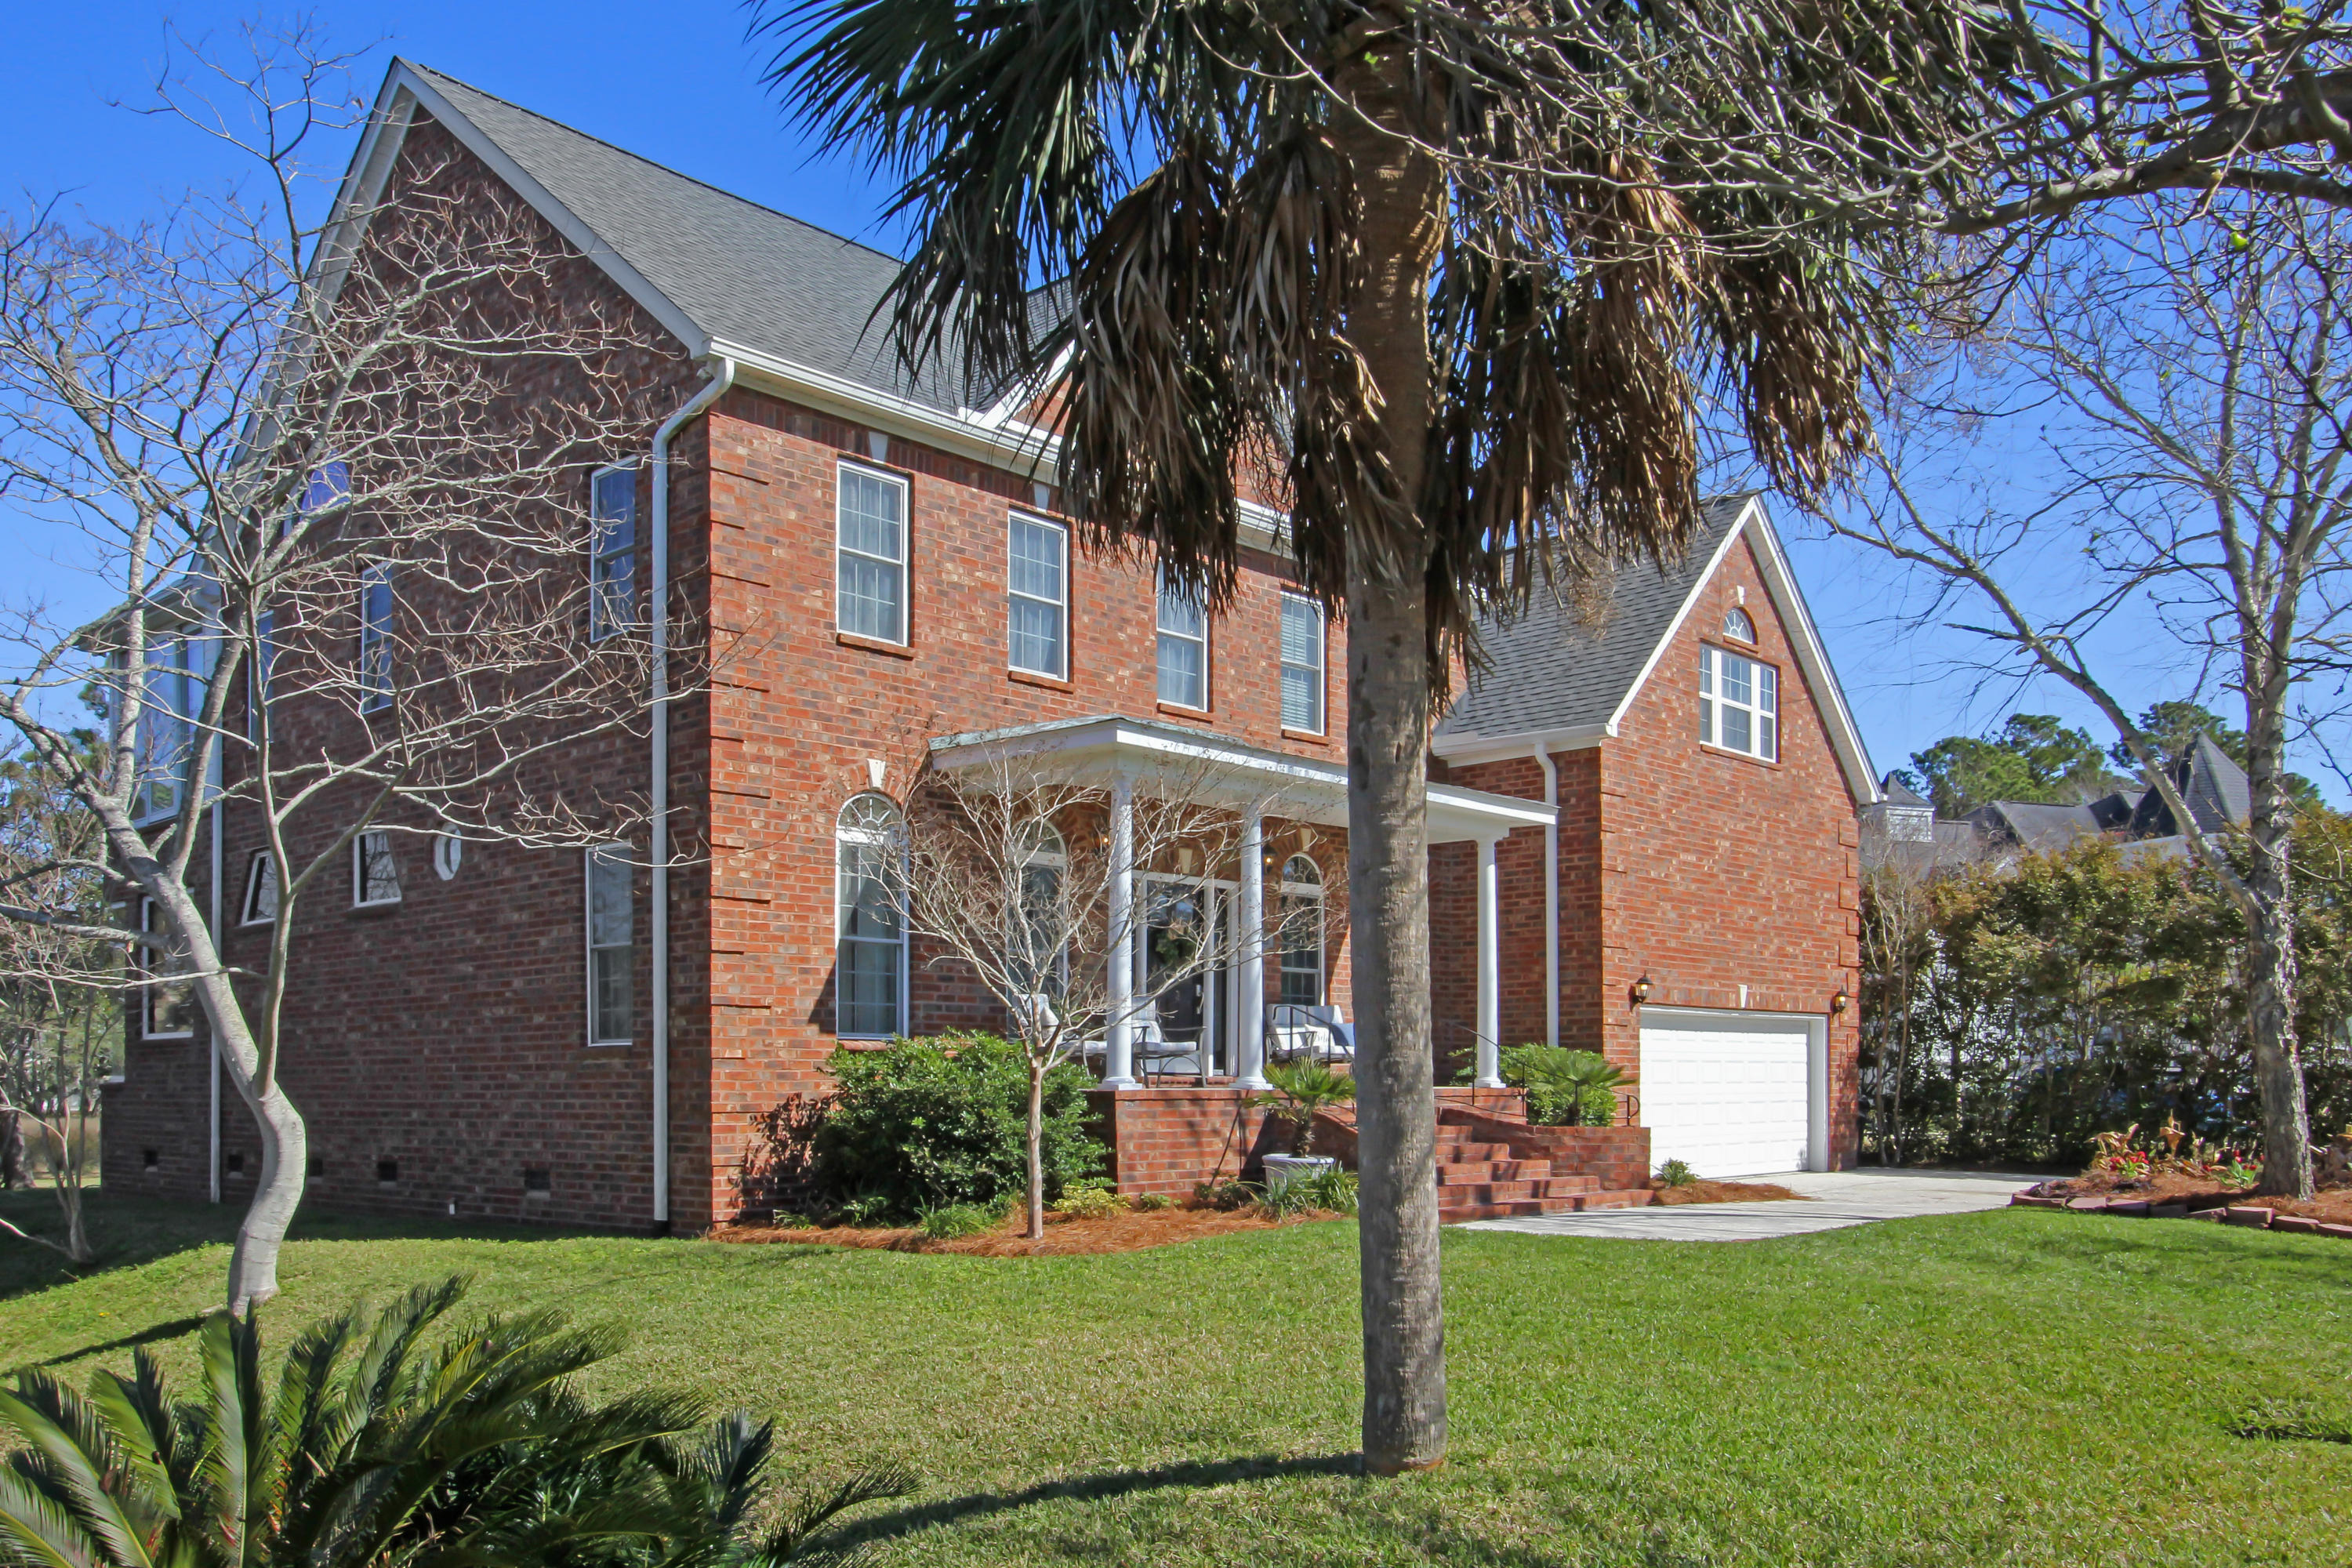 Belle Hall Homes For Sale - 752 High Battery, Mount Pleasant, SC - 2